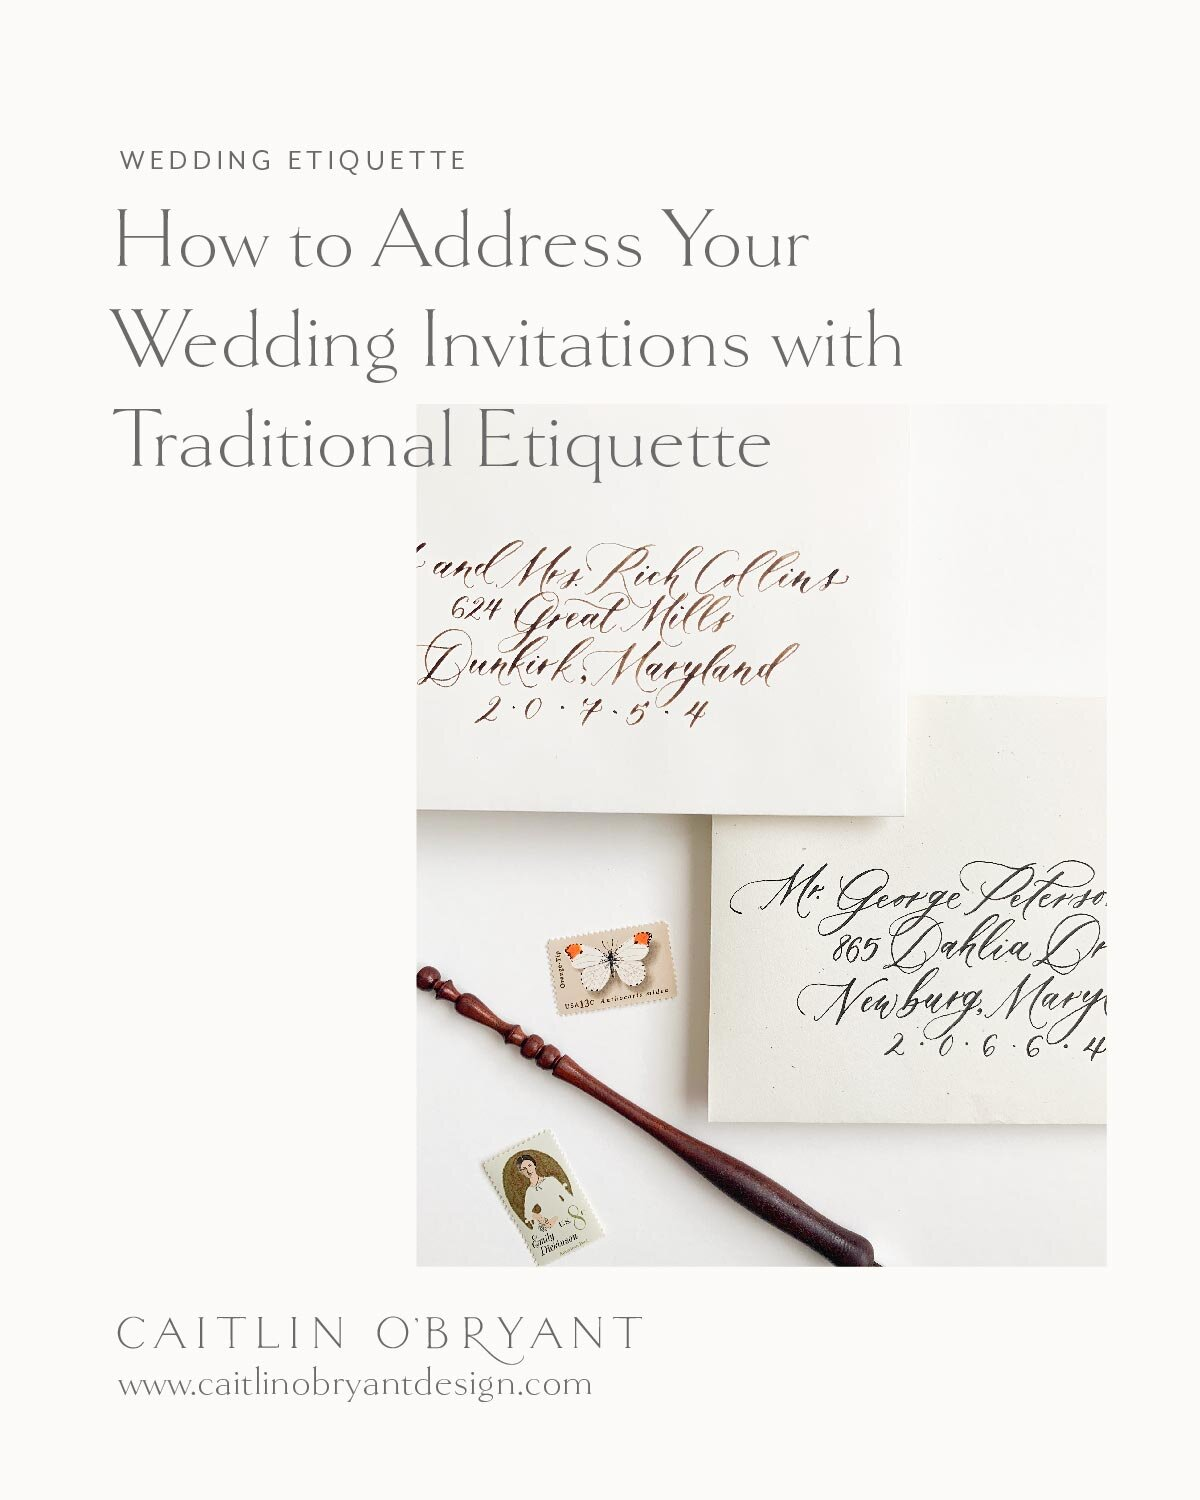 How To Address Wedding Invitations With Traditional Etiquette